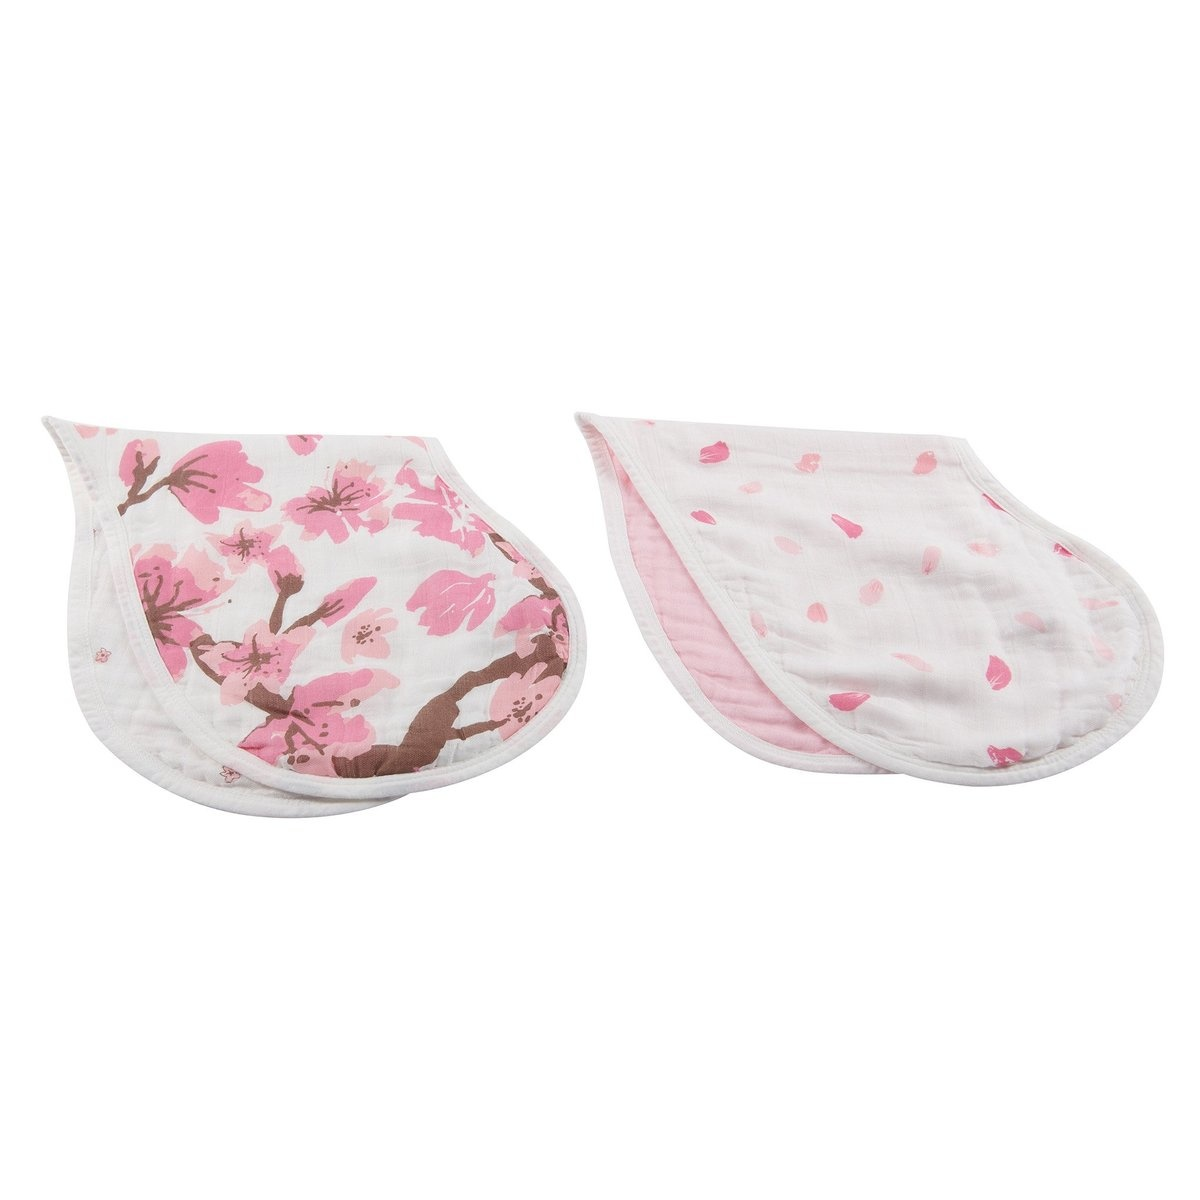 Newcastle Classics Bamboo Heart Bibs (2-pack)